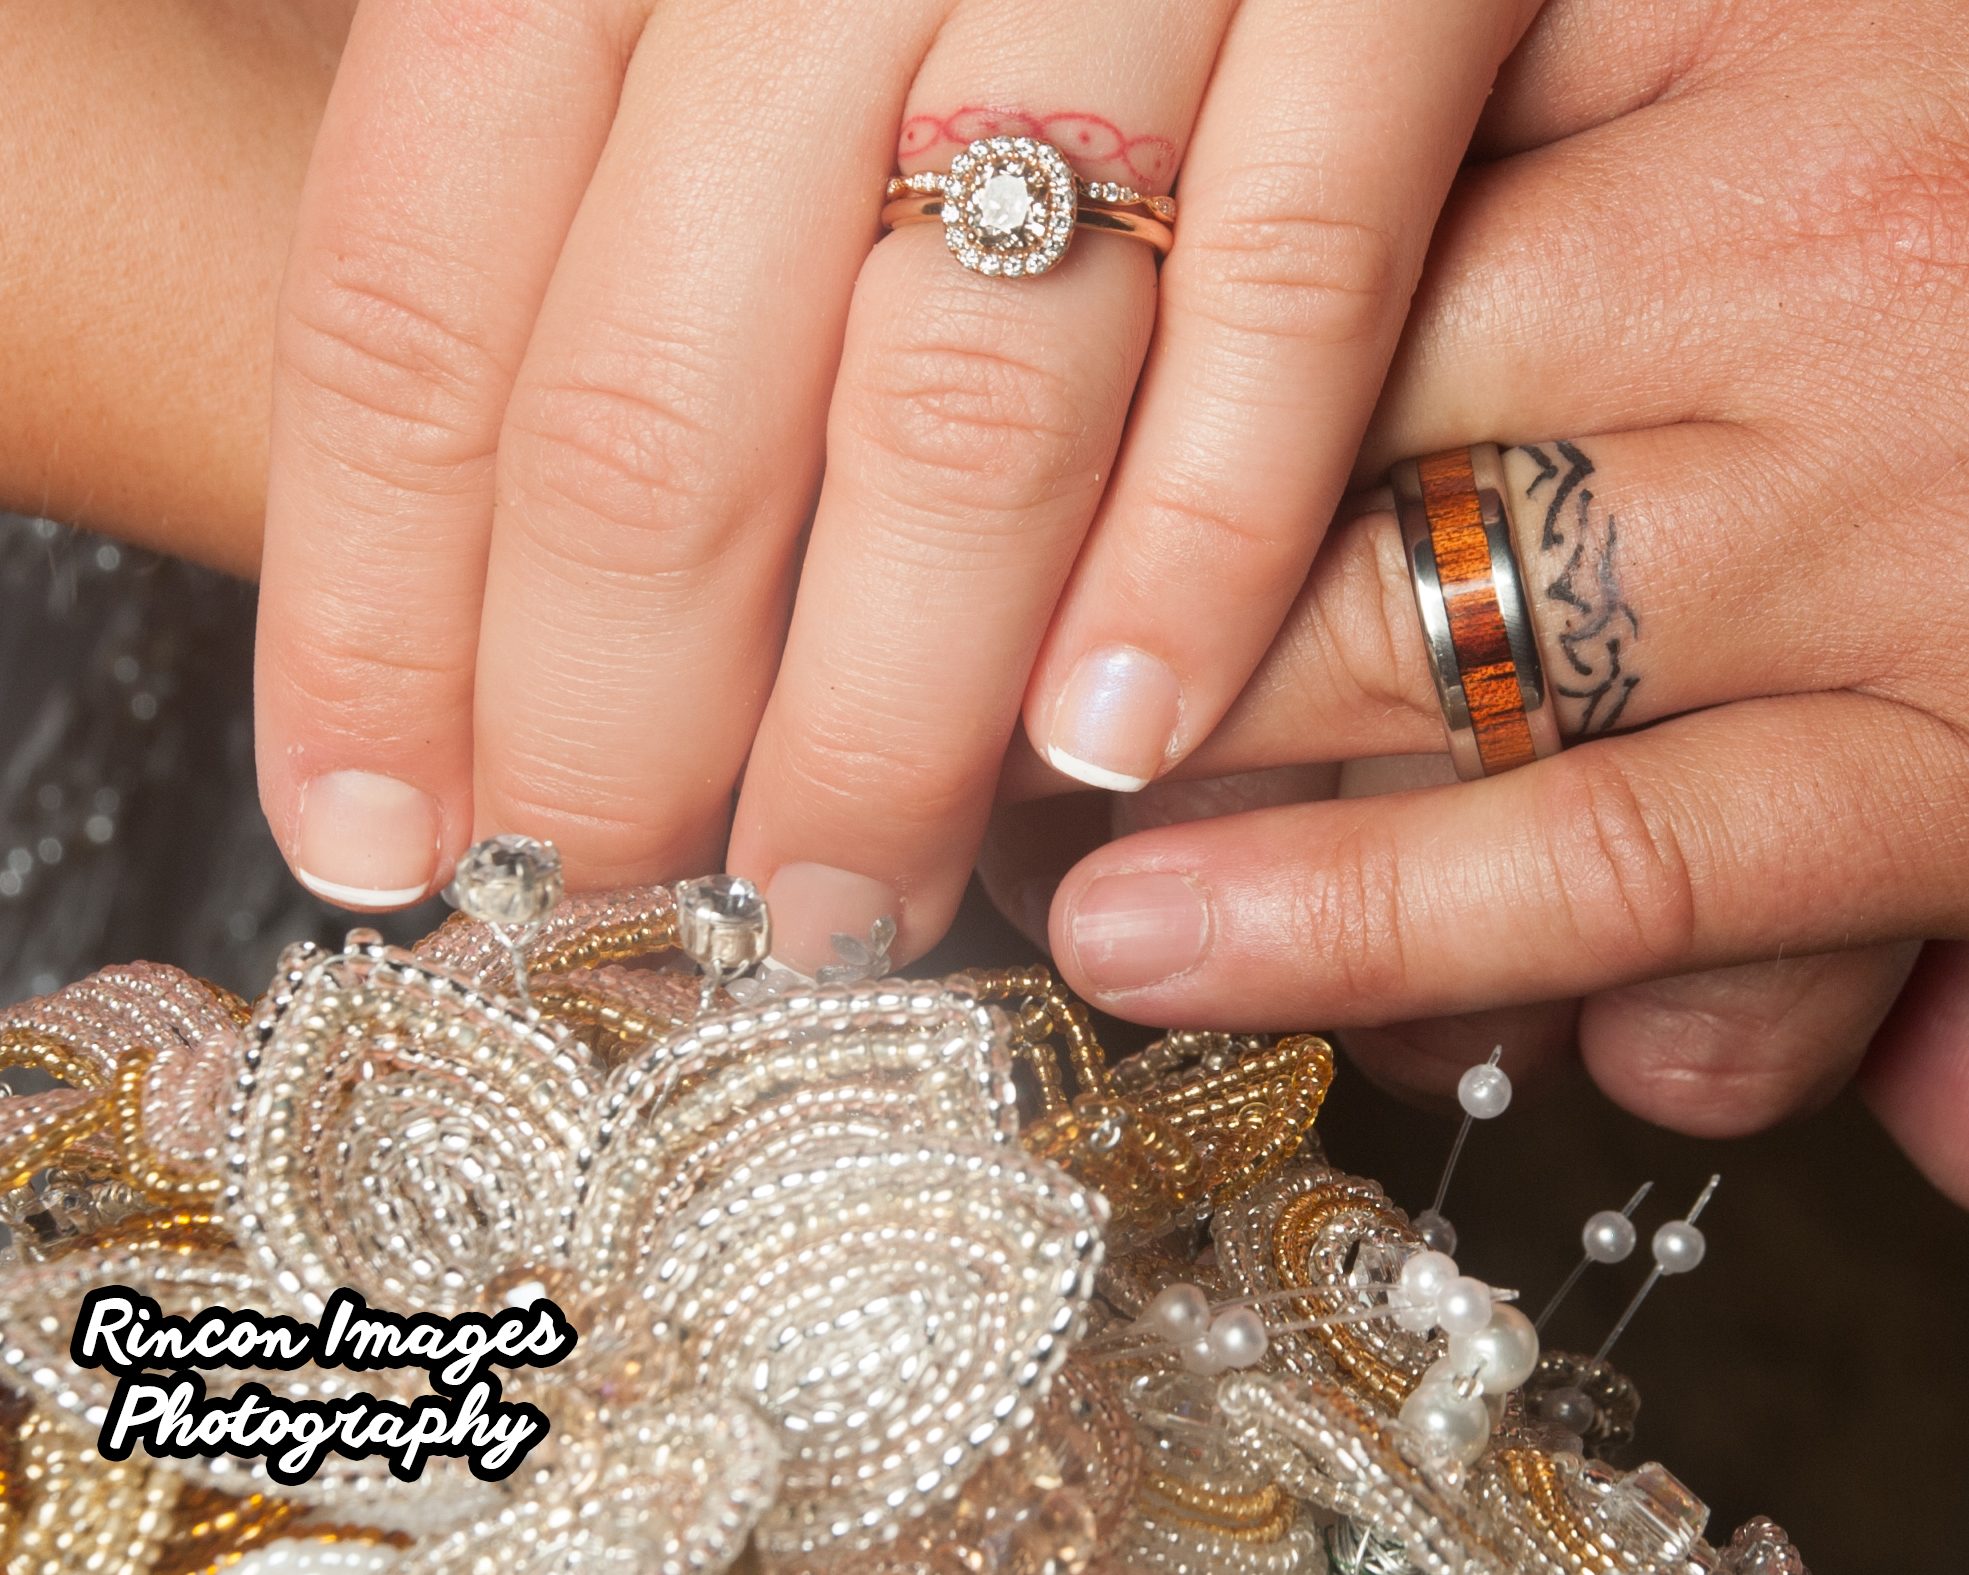 The Bride And Grooms Wedding Rings And Wedding Band Tattoos Wedding  Photograph By Rincon Images